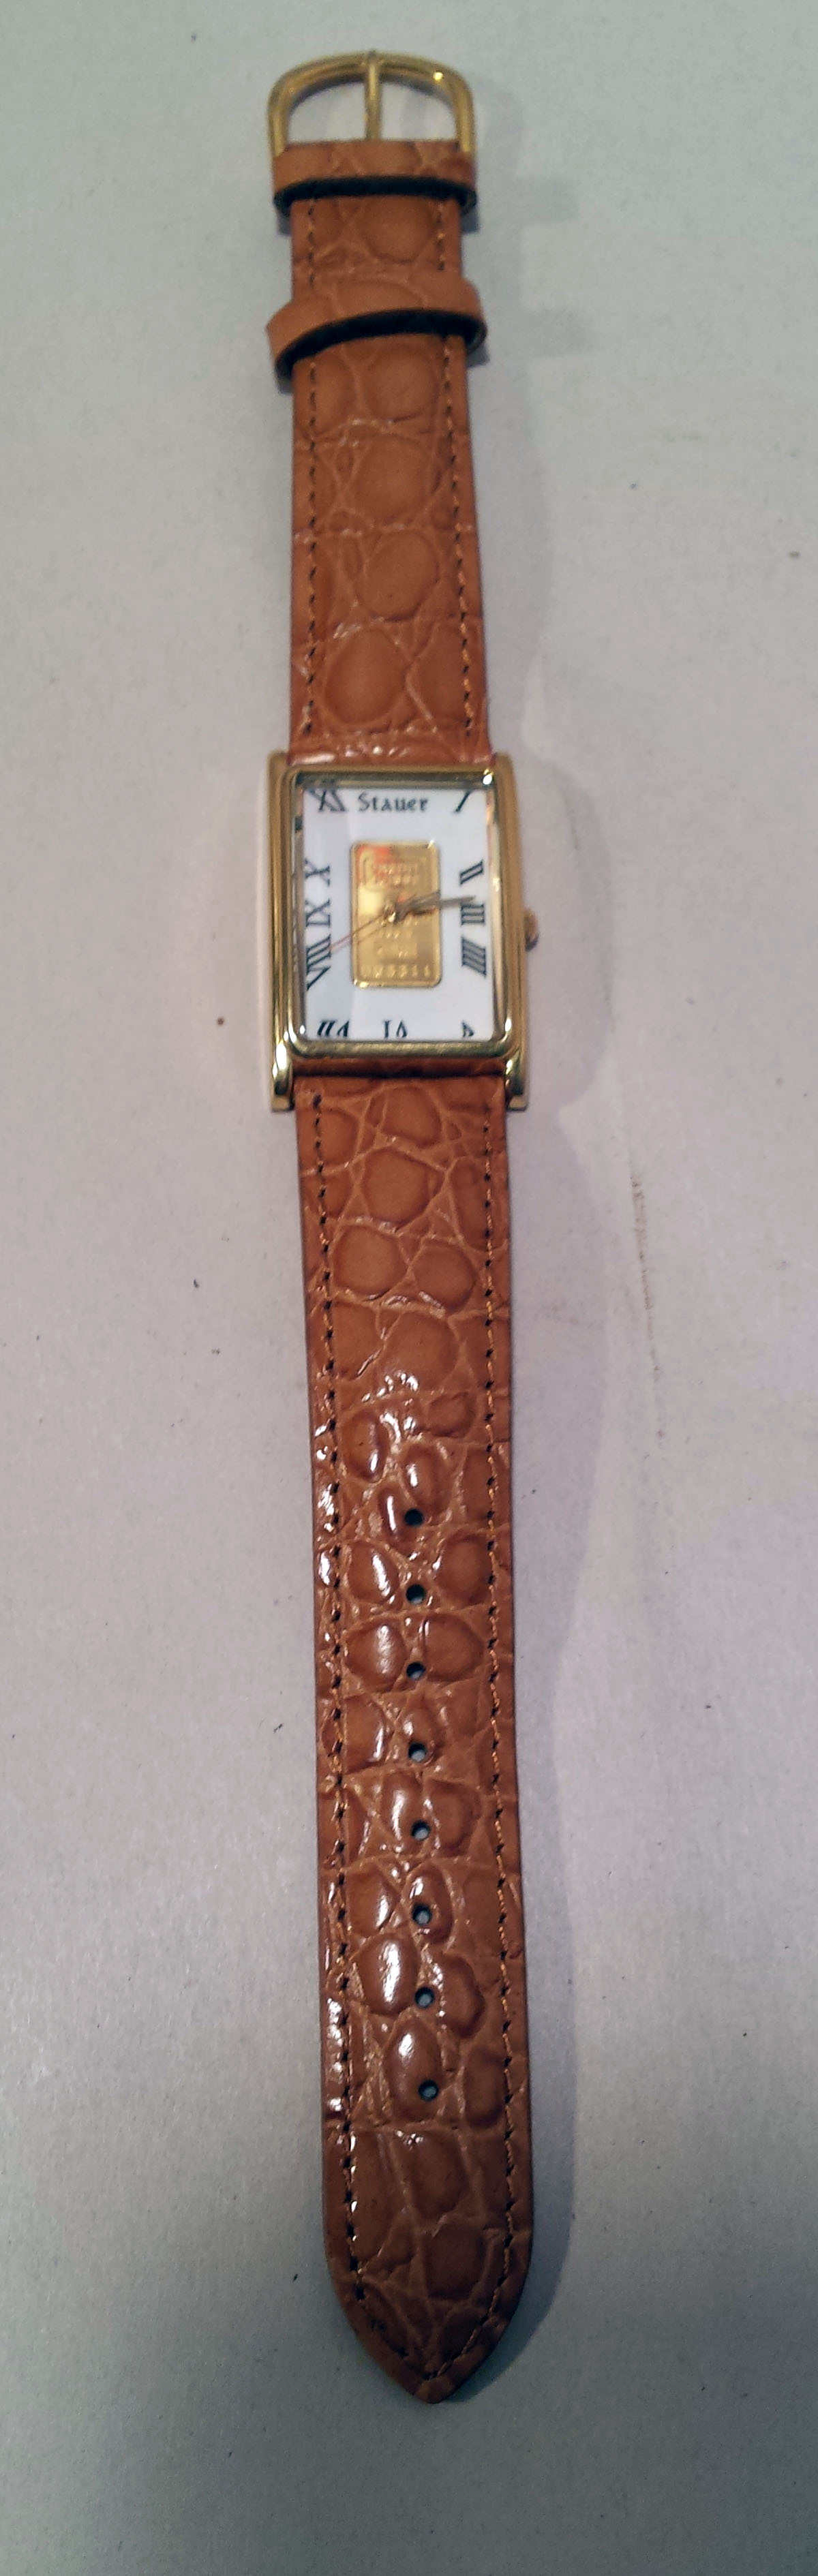 Stauer Credit Suisse 1 Gram 999.9 Pure Gold Bar Ingot Women's Watch Working